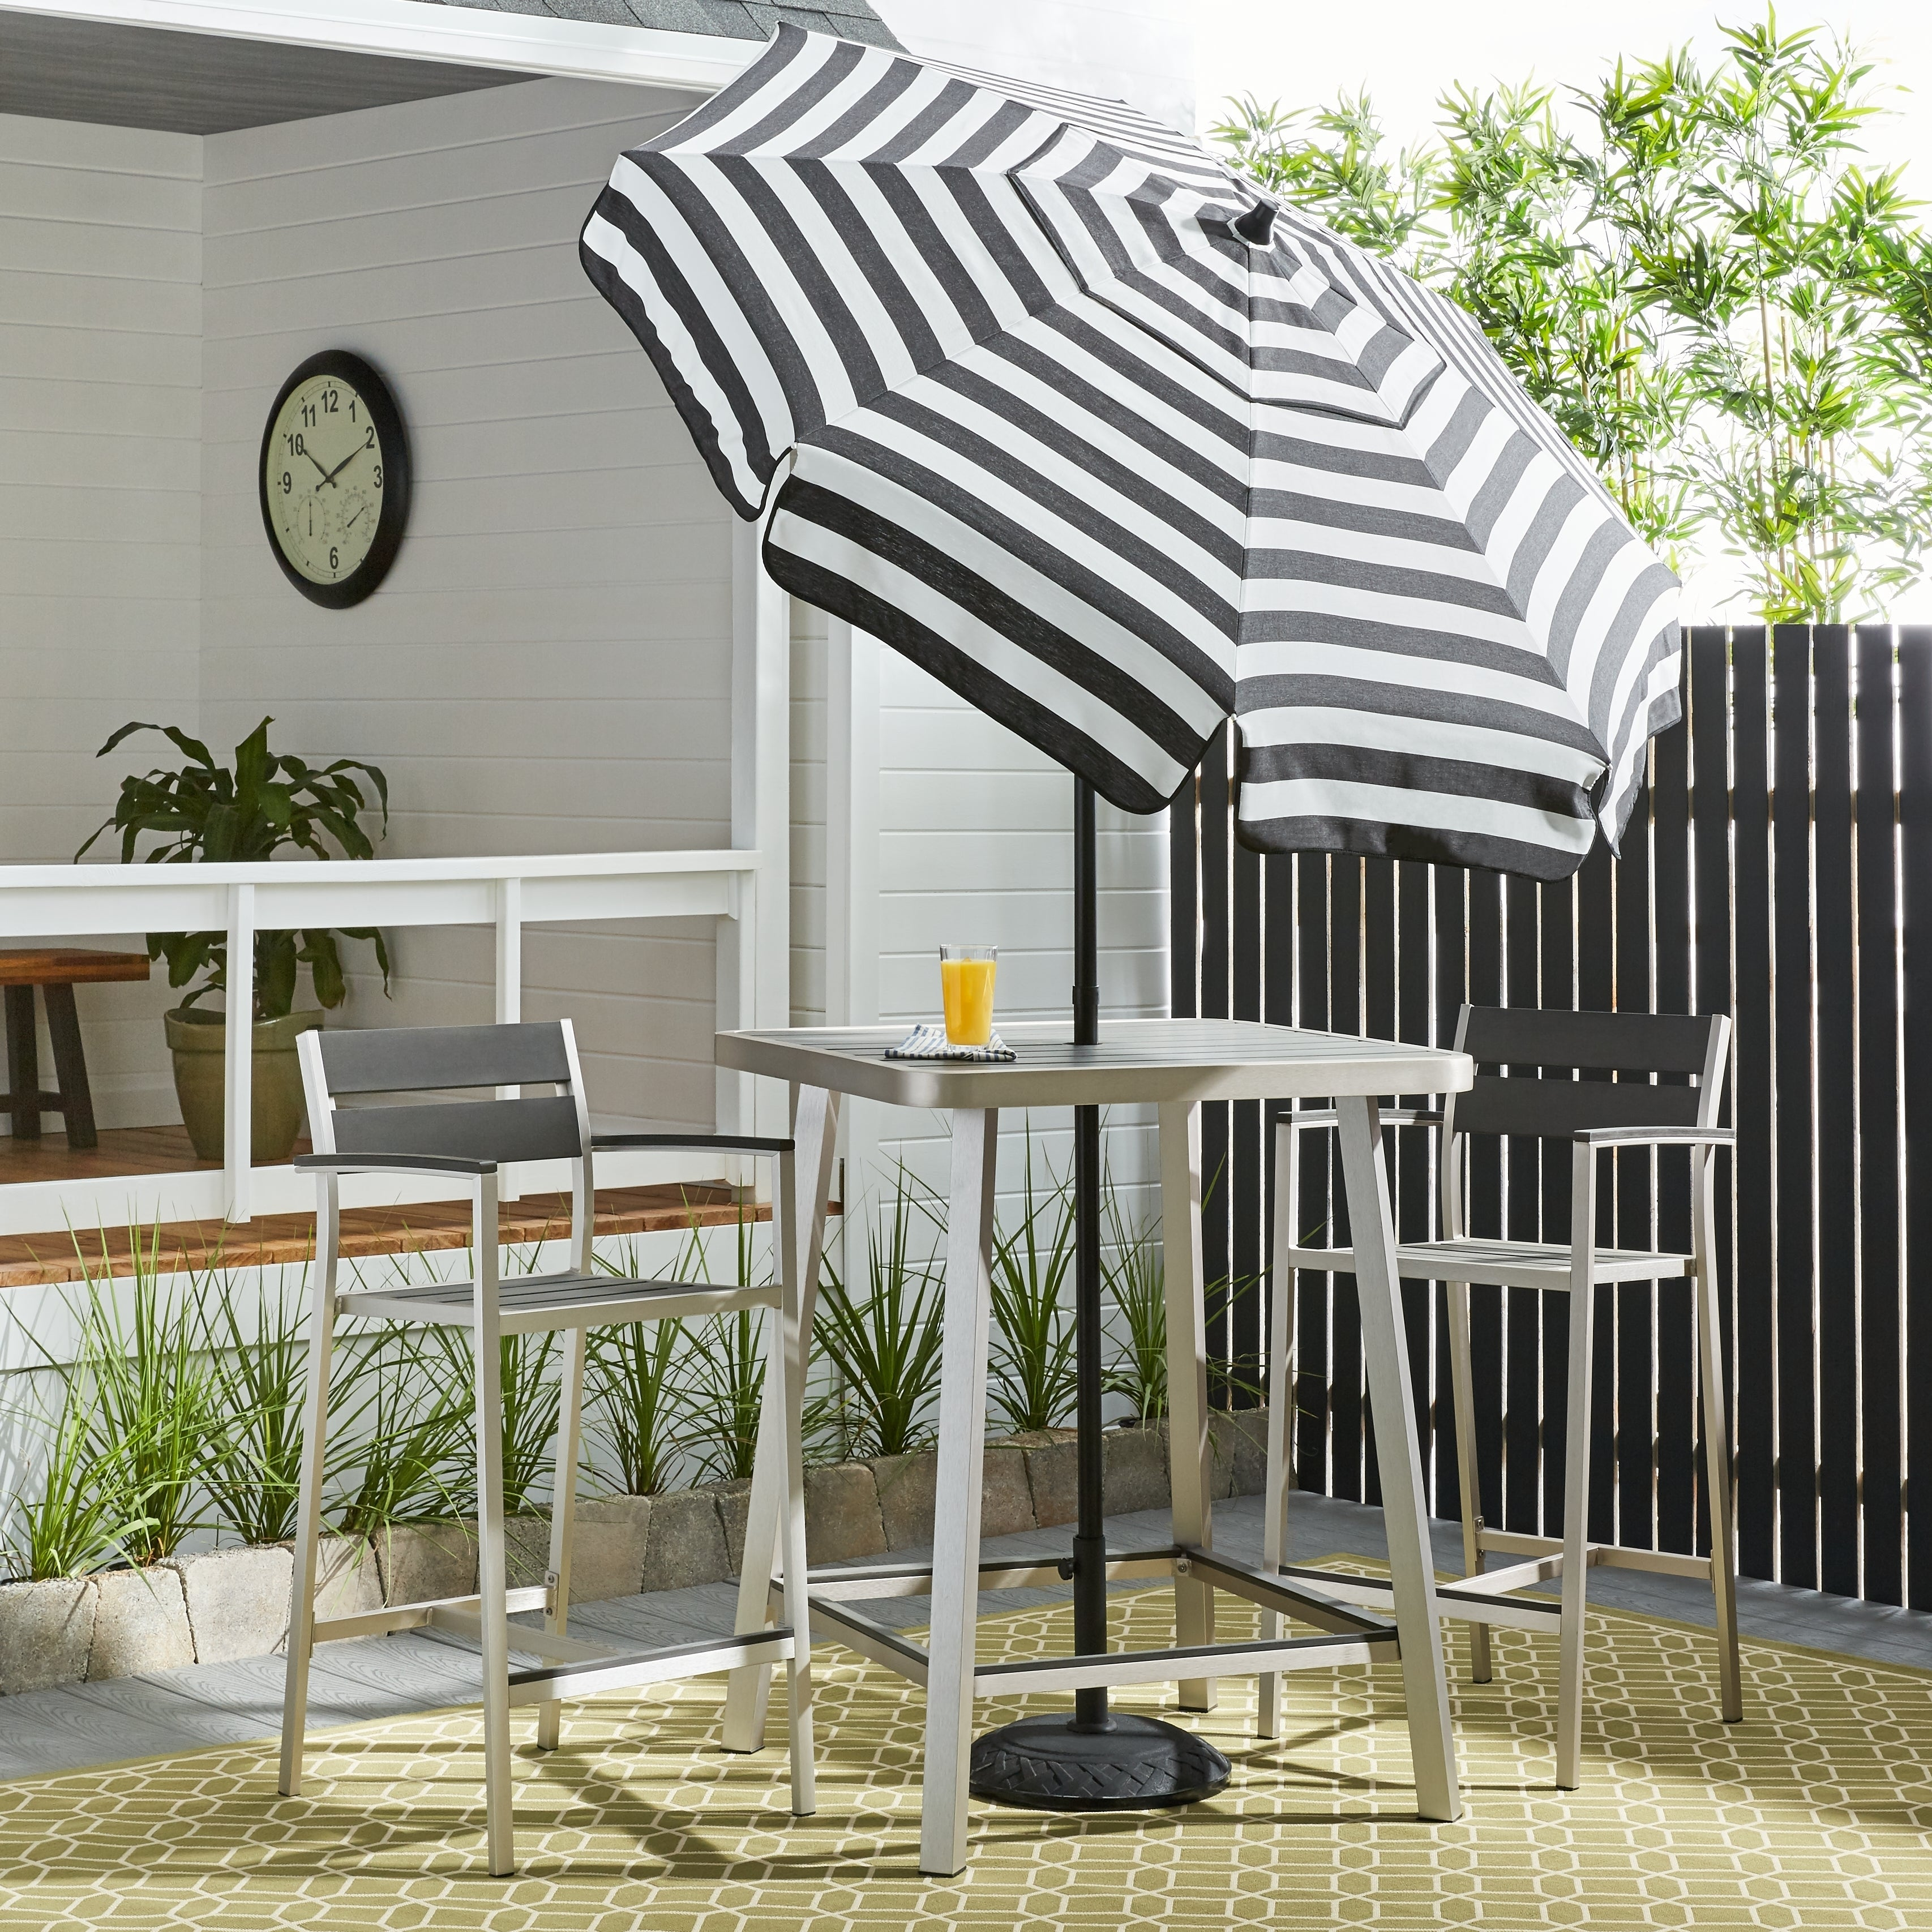 Acrylic Striped Patio Umbrella